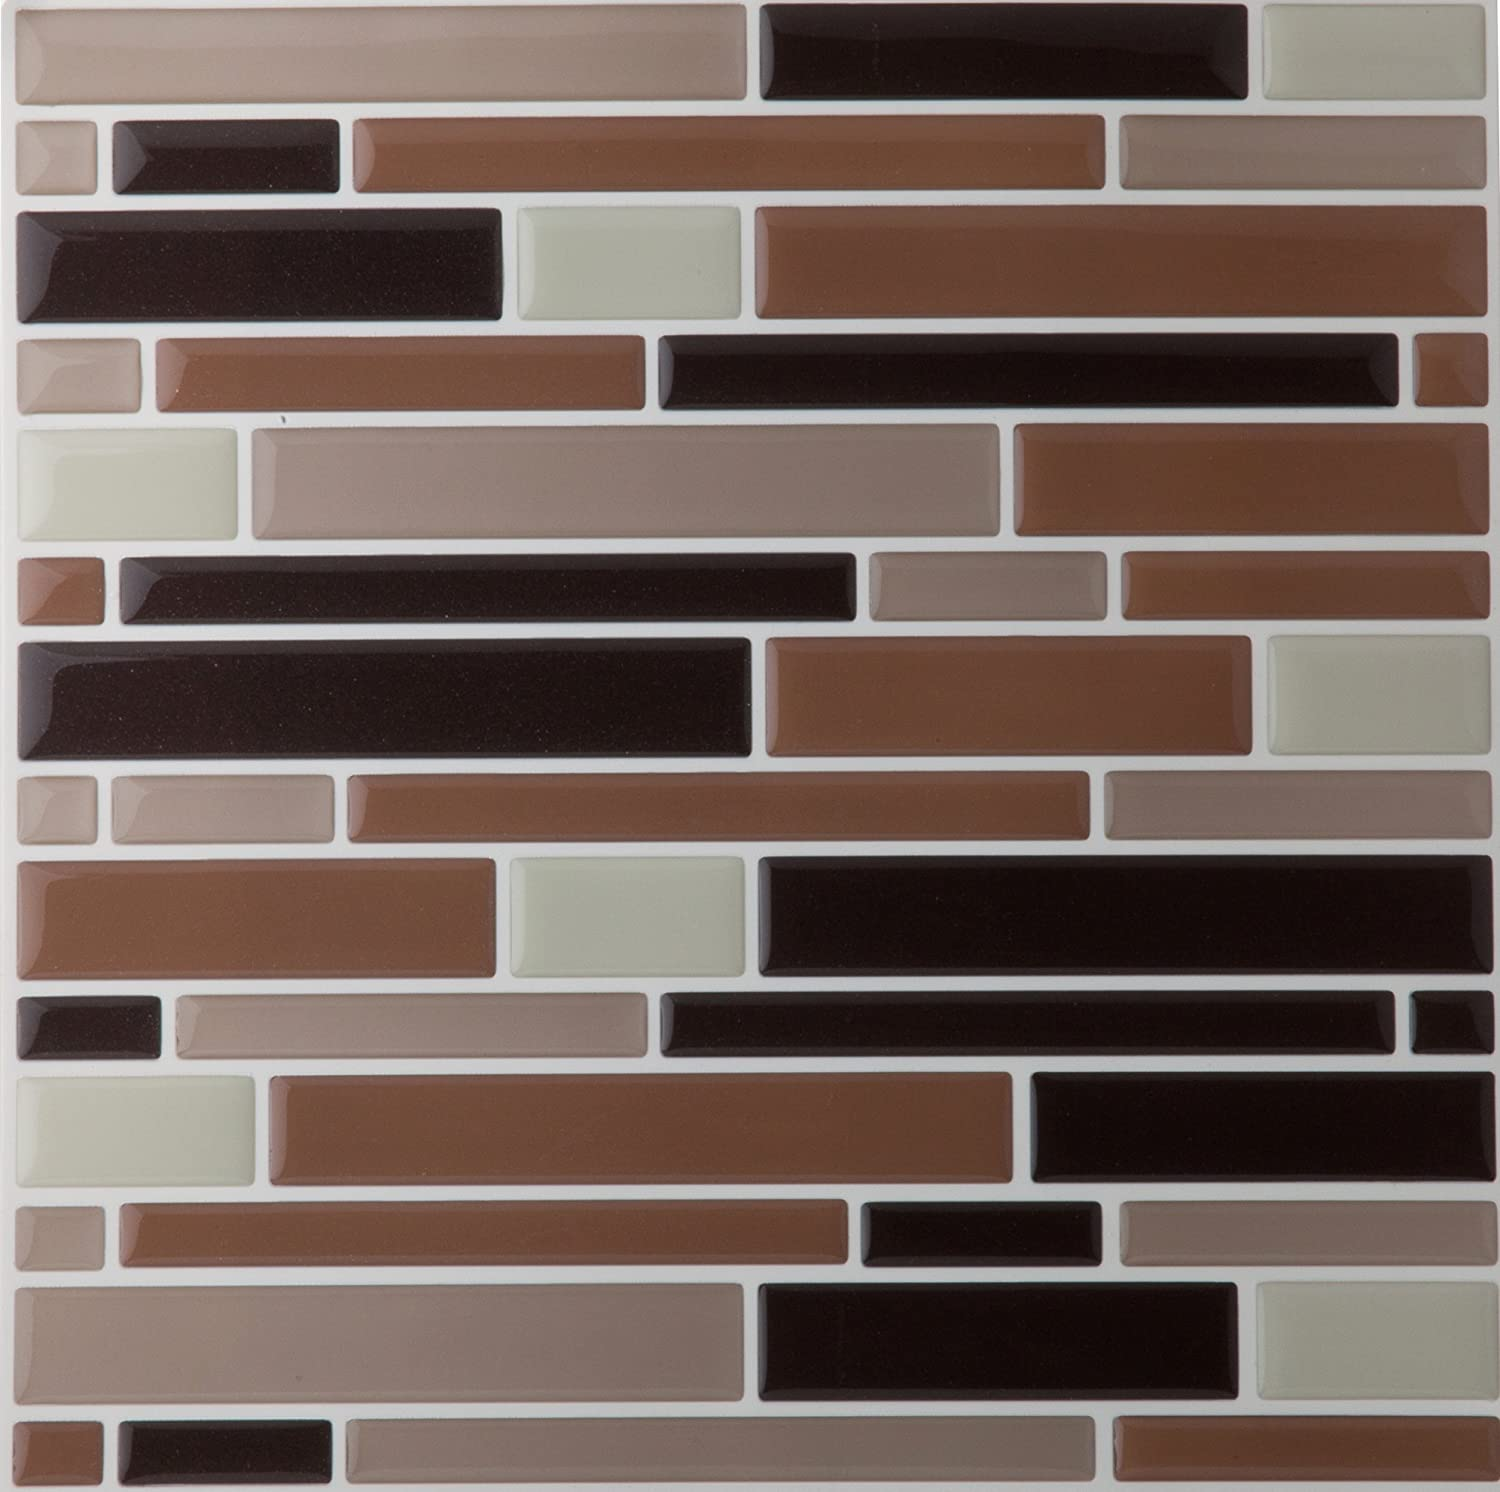 Amazon 6 pack mosaic magic gel self adhesive backsplash wall amazon 6 pack mosaic magic gel self adhesive backsplash wall tiles 9125 x 9125 coffeebeige piano home kitchen doublecrazyfo Image collections